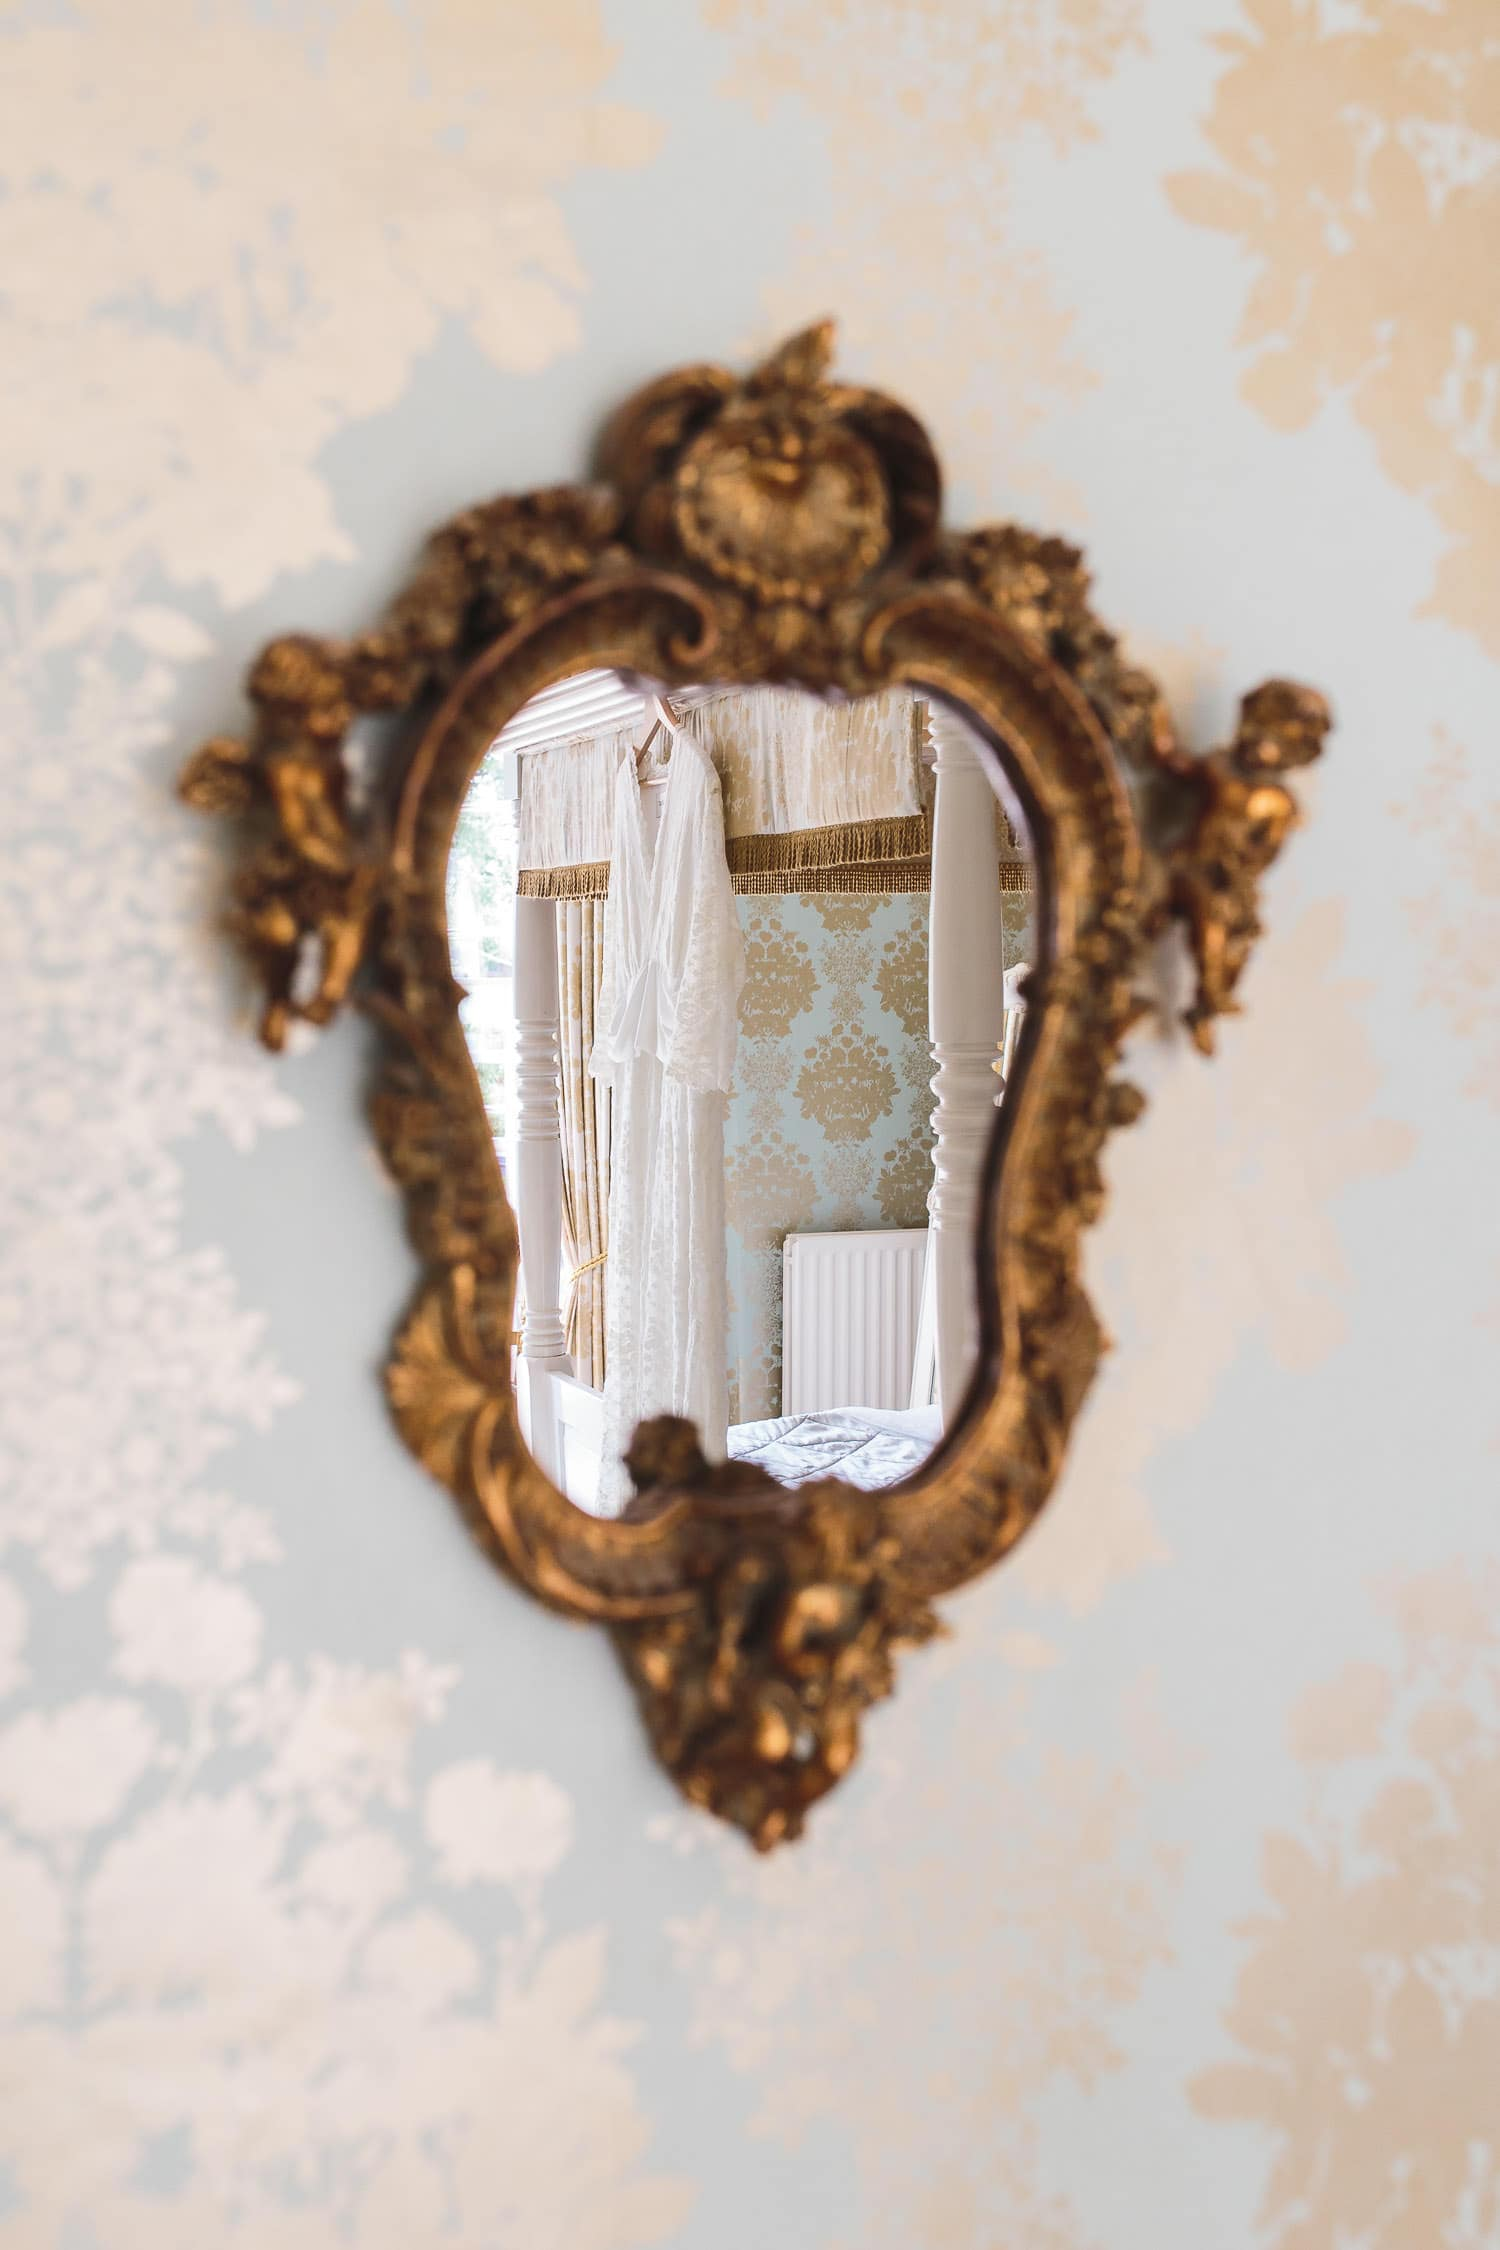 reflection of wedding dress in mirror on the wall at warwick house wedding venue in southam